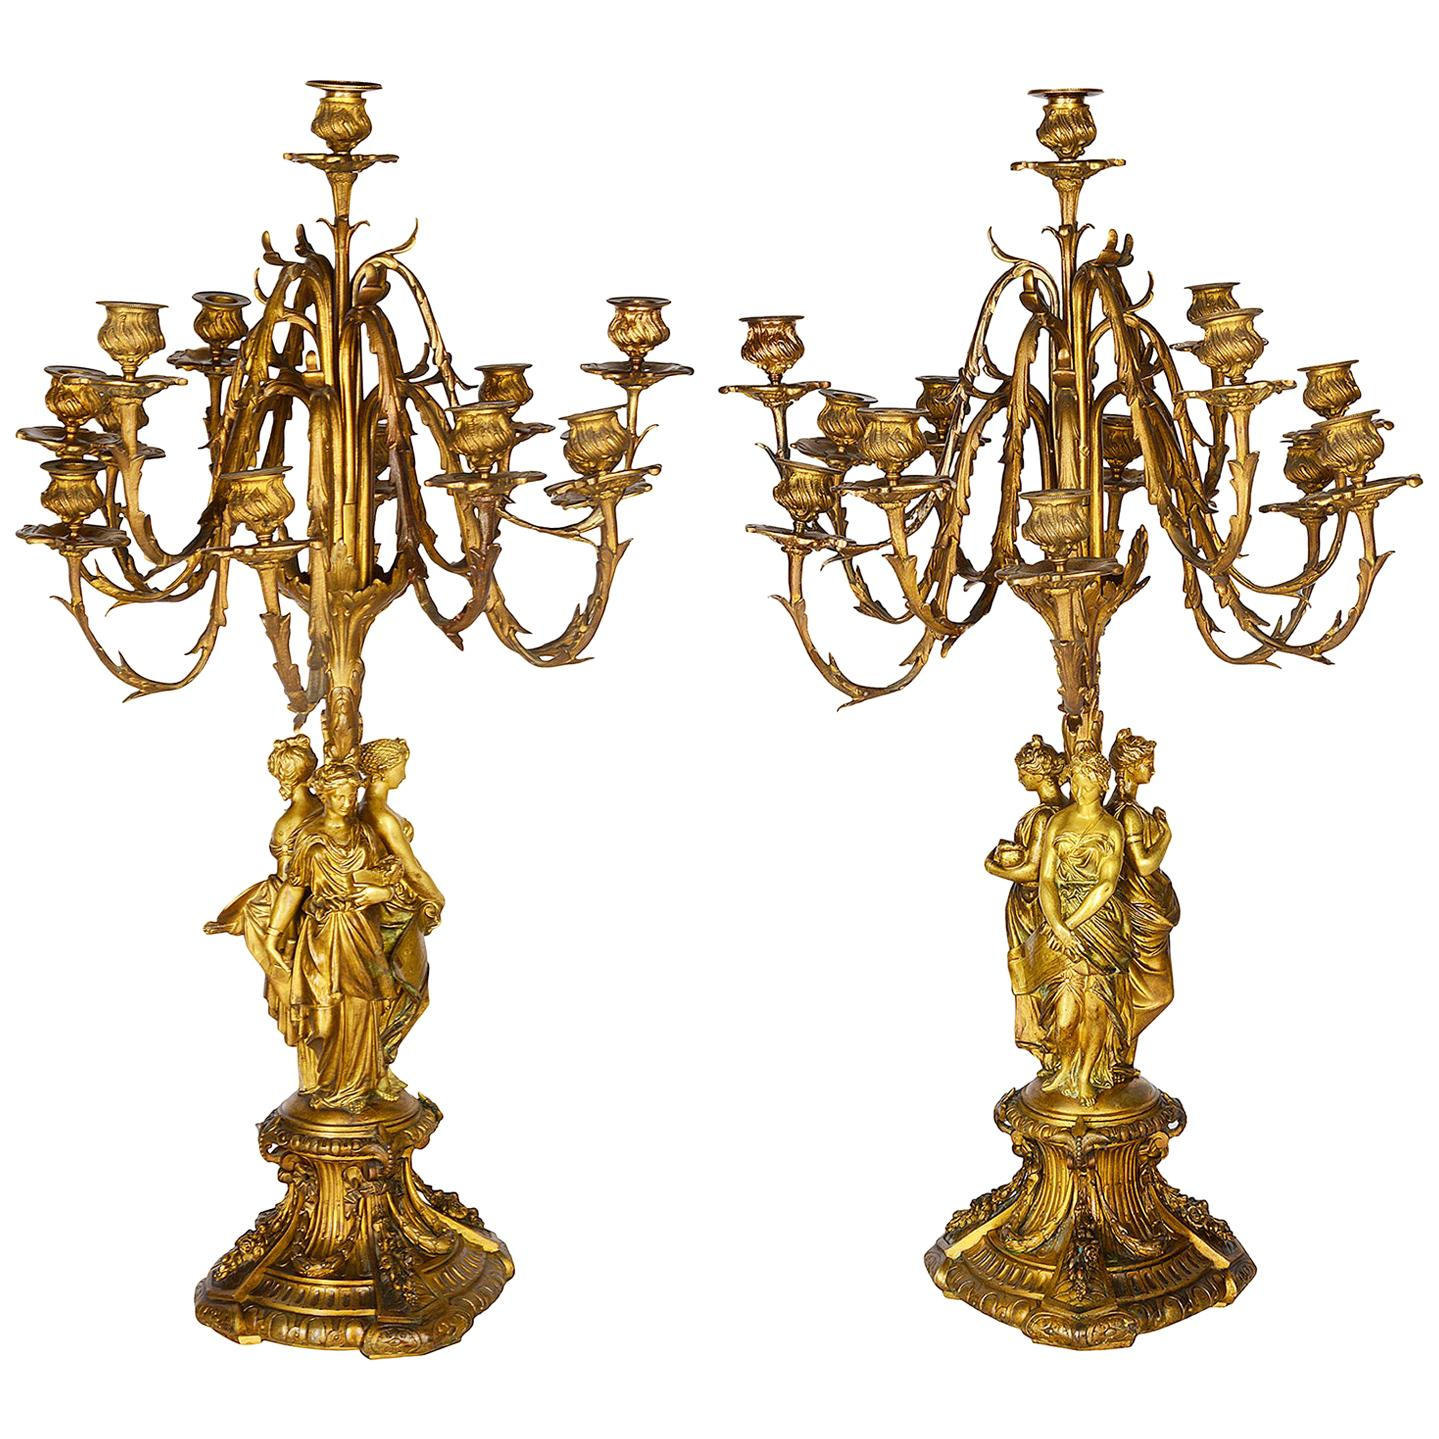 Large Pair of Early 19th Century Gilded Ormolu Candelabra